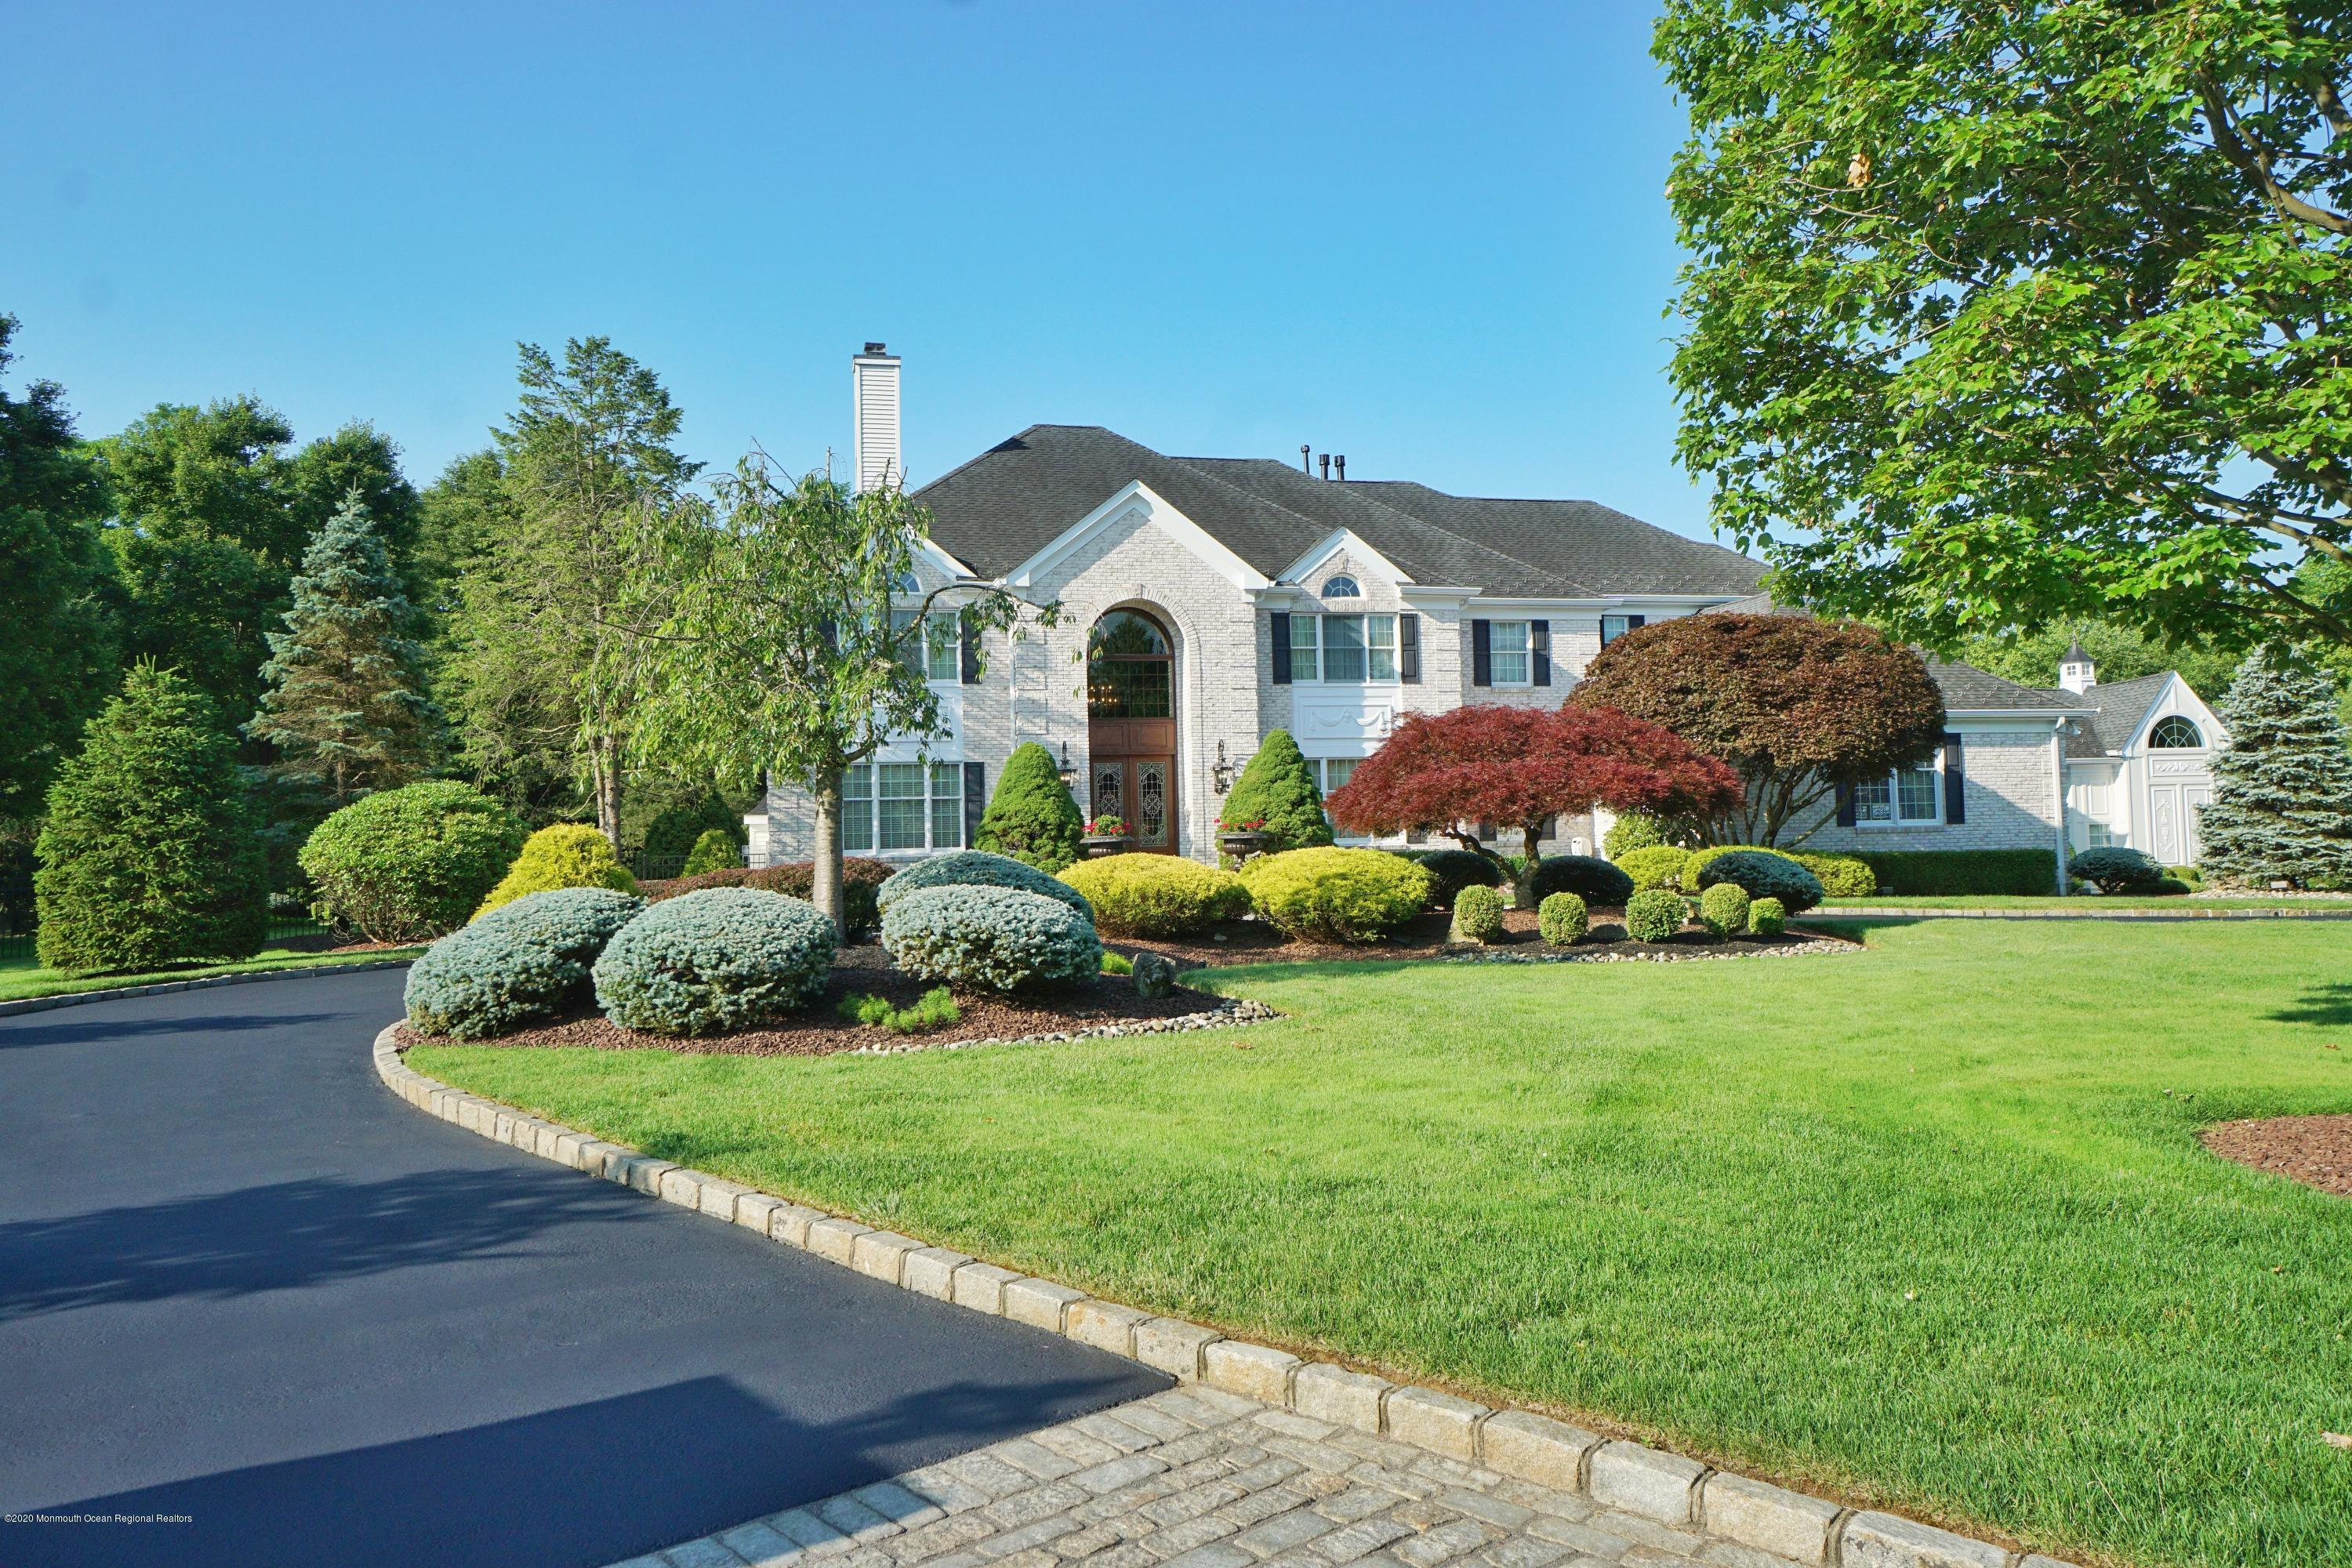 Photo of 14 Shadowbrook Drive, Colts Neck, NJ 07722